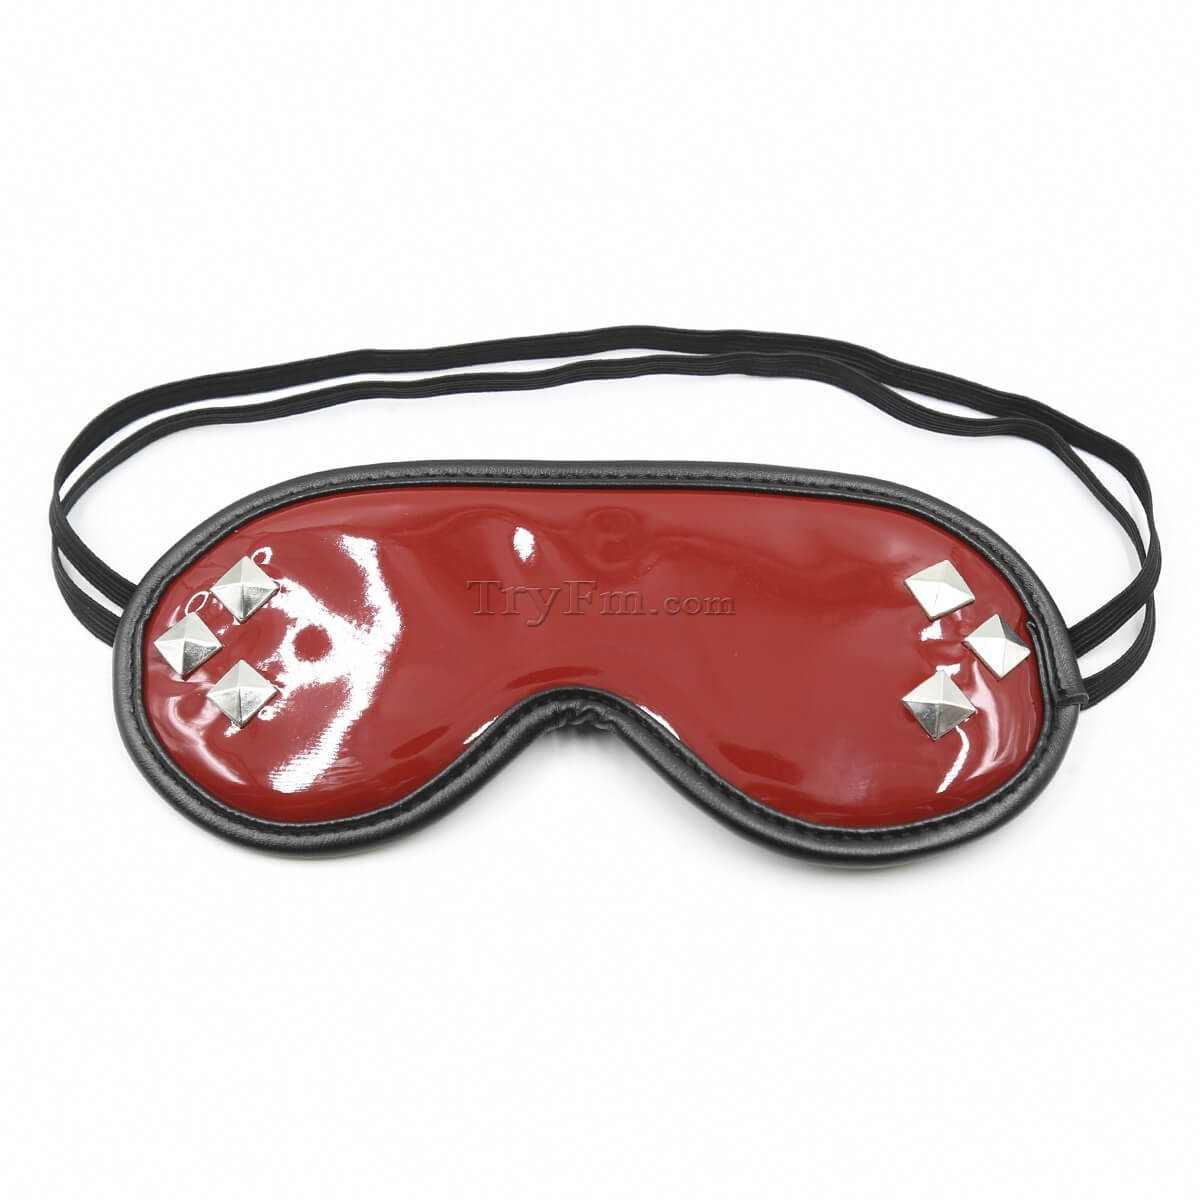 13-dark-red-rivet-blindfold4.jpg